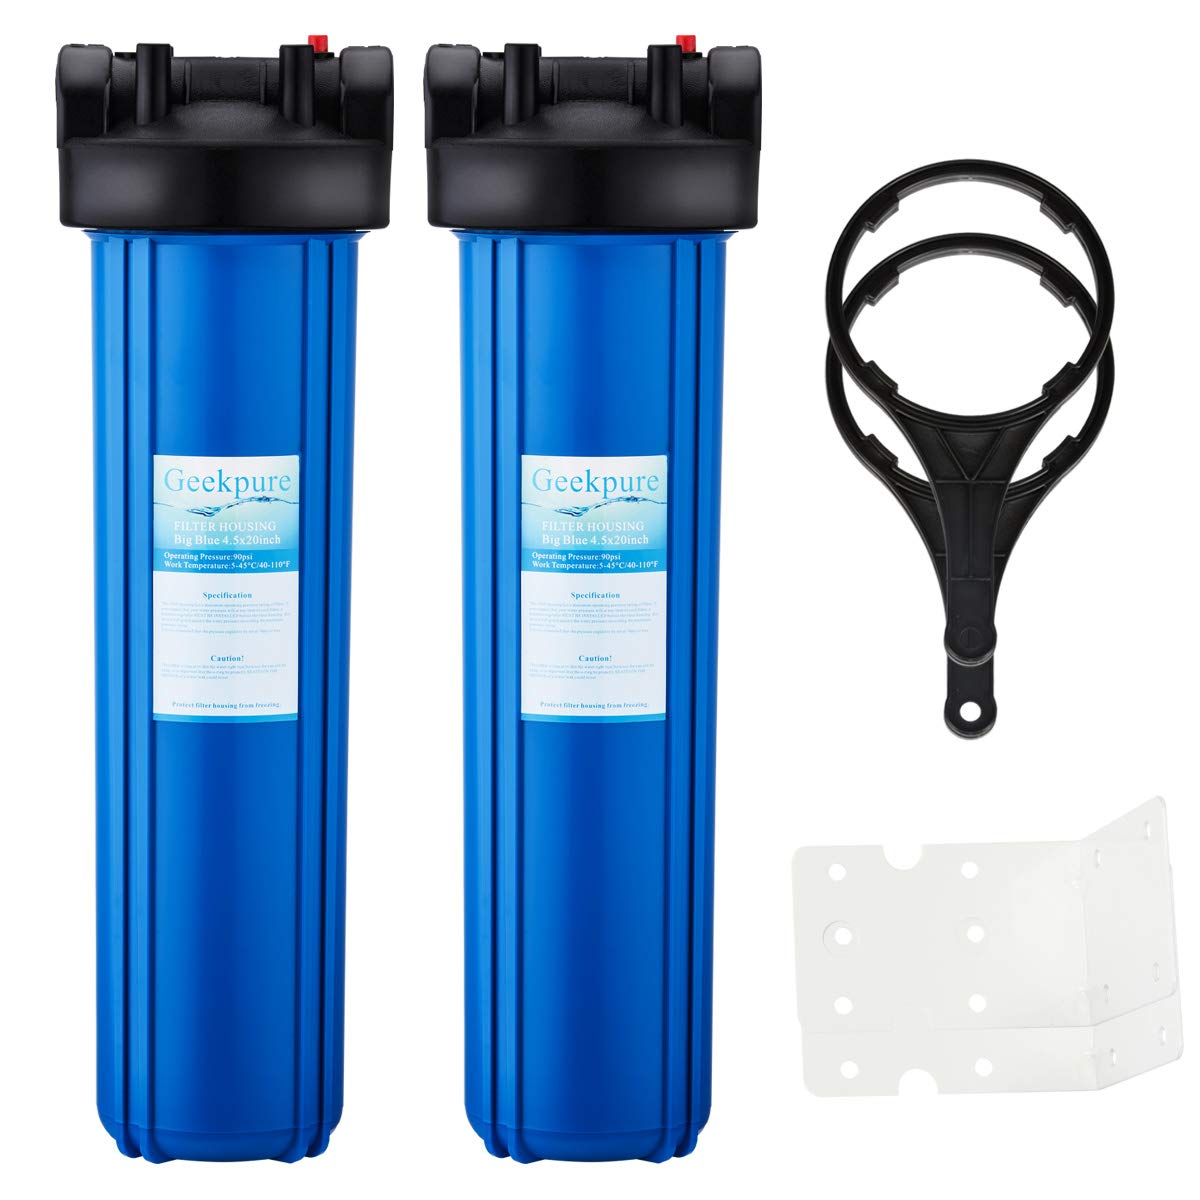 Geekpure Whole House Big Blue Water Filter Housing 1-Inch Outlet/Inlet with Wrench + Bracket -4.5'' x 20'' -Blue Color-Pack of 2 by Geekpure